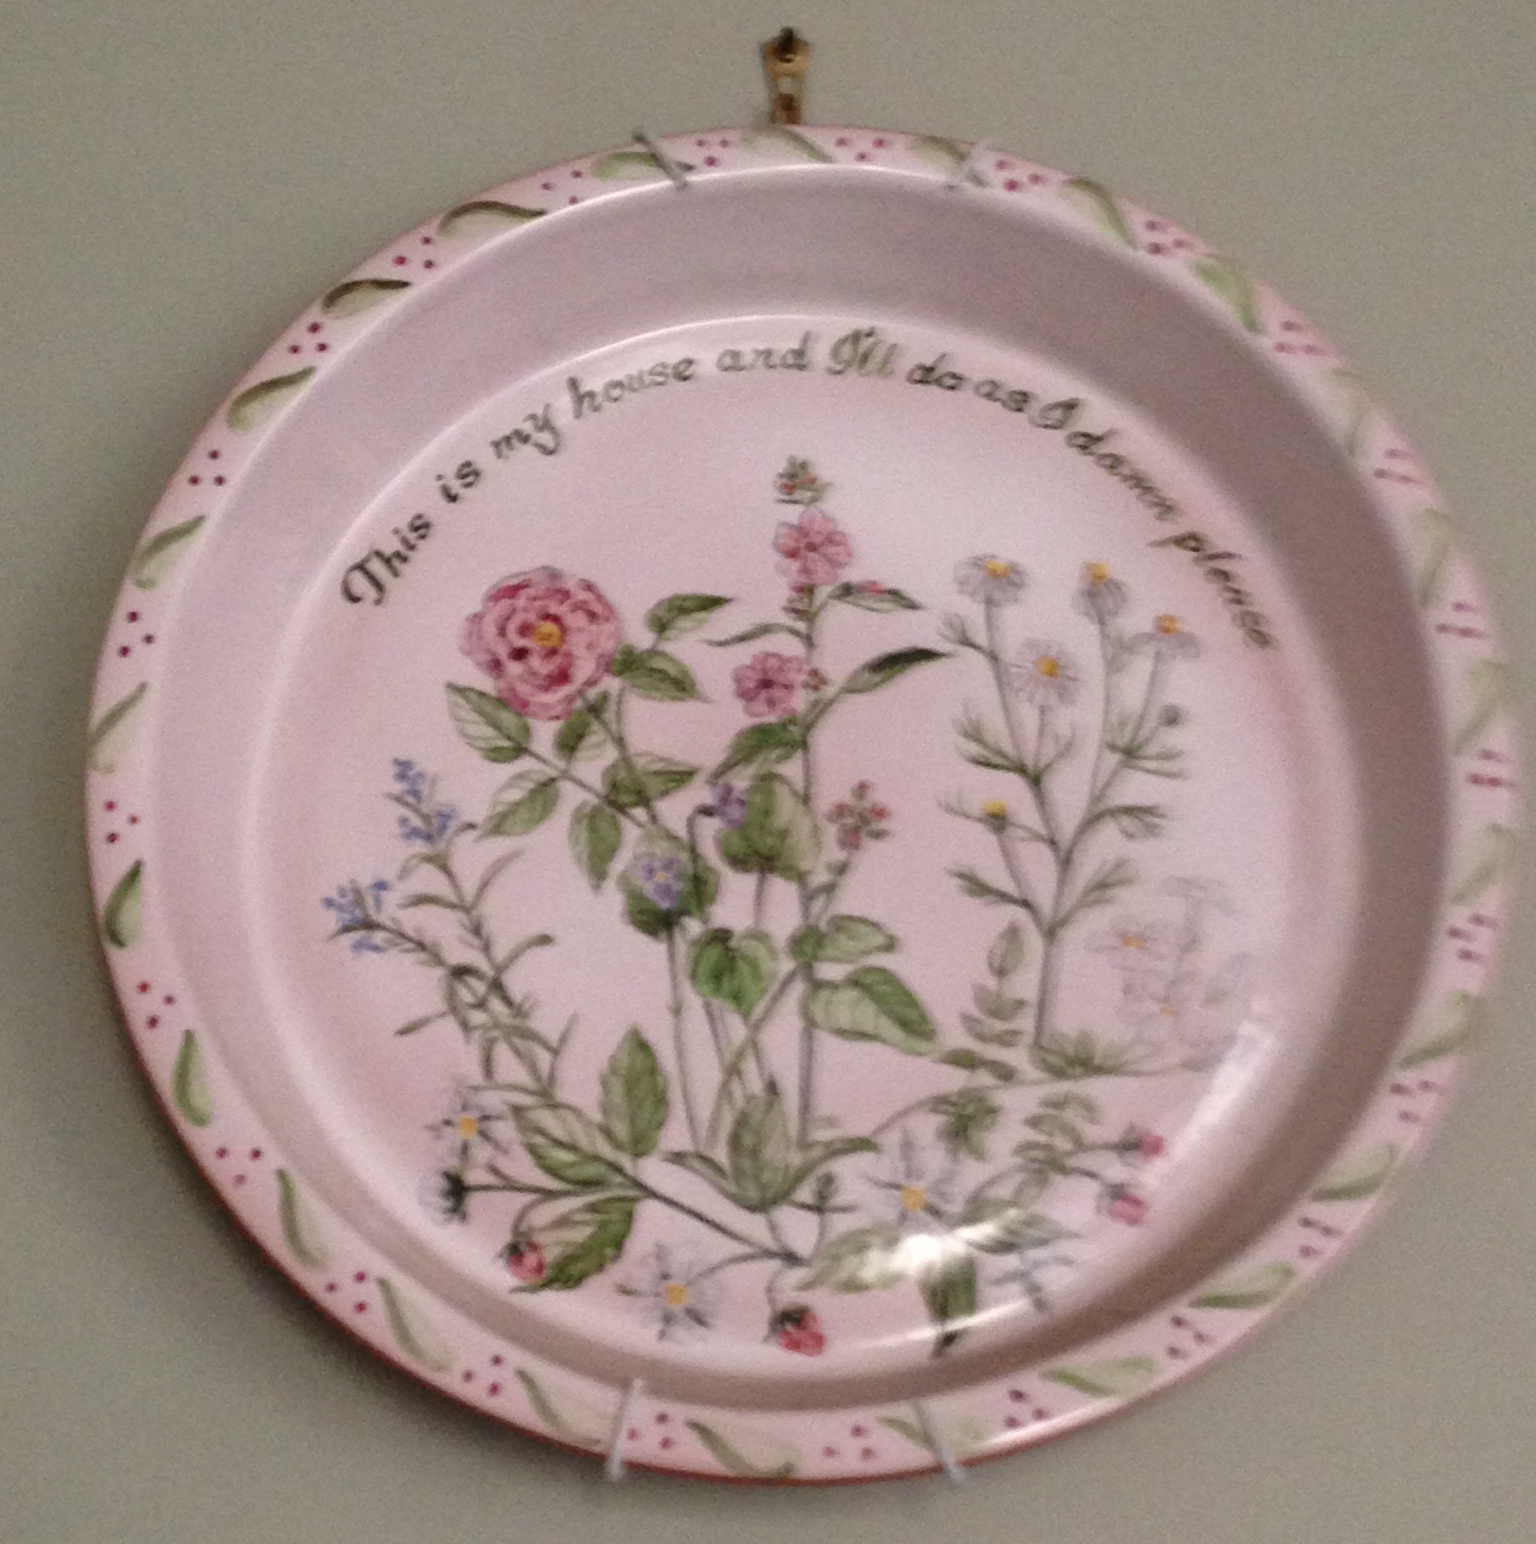 Plate inspires embroidery design